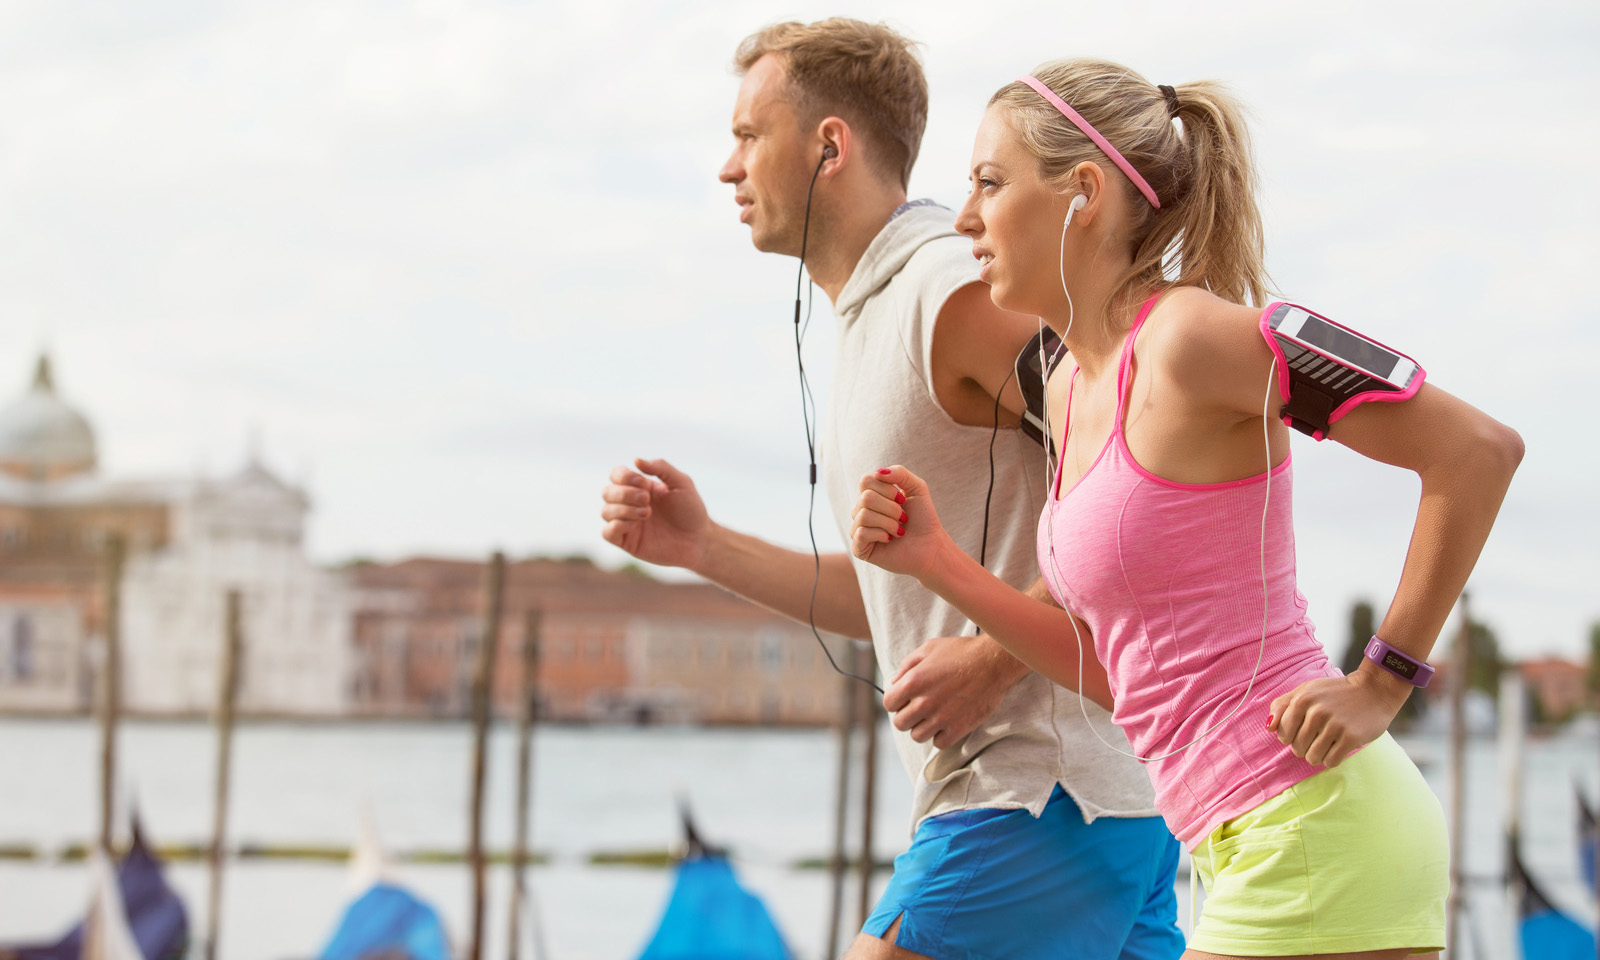 How Fit Are You? Test Yourself Via The 4 S's of Fitness